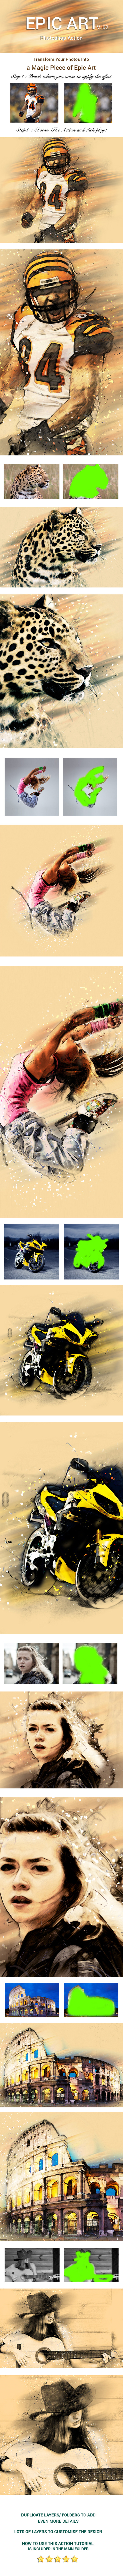 GraphicRiver Epic Art 2 Photoshop Action 11190522